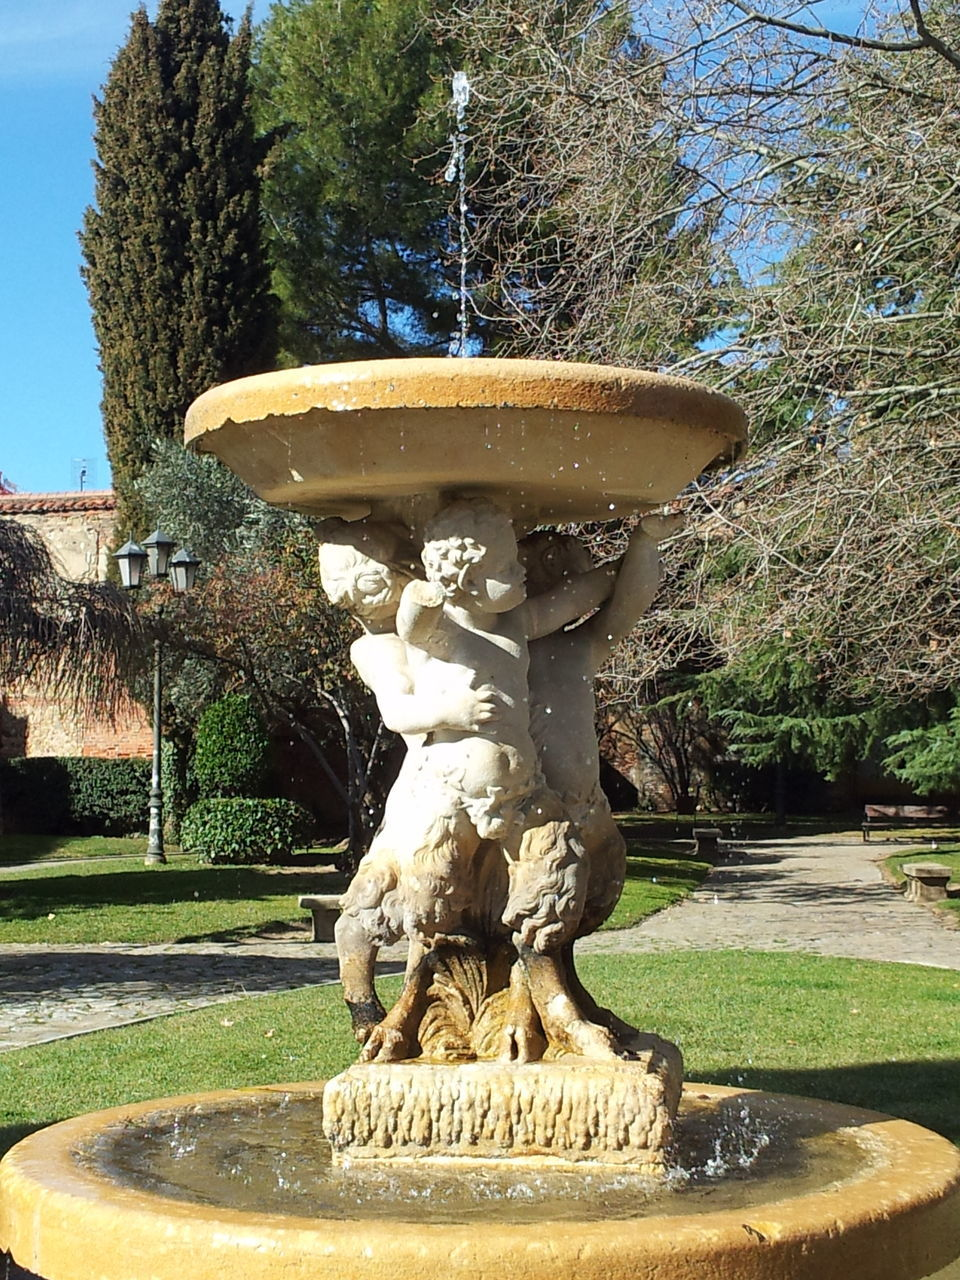 statue, fountain, sculpture, art and craft, tree, creativity, water, human representation, day, drinking fountain, park - man made space, outdoors, topiary, no people, growth, nature, architecture, beauty in nature, sky